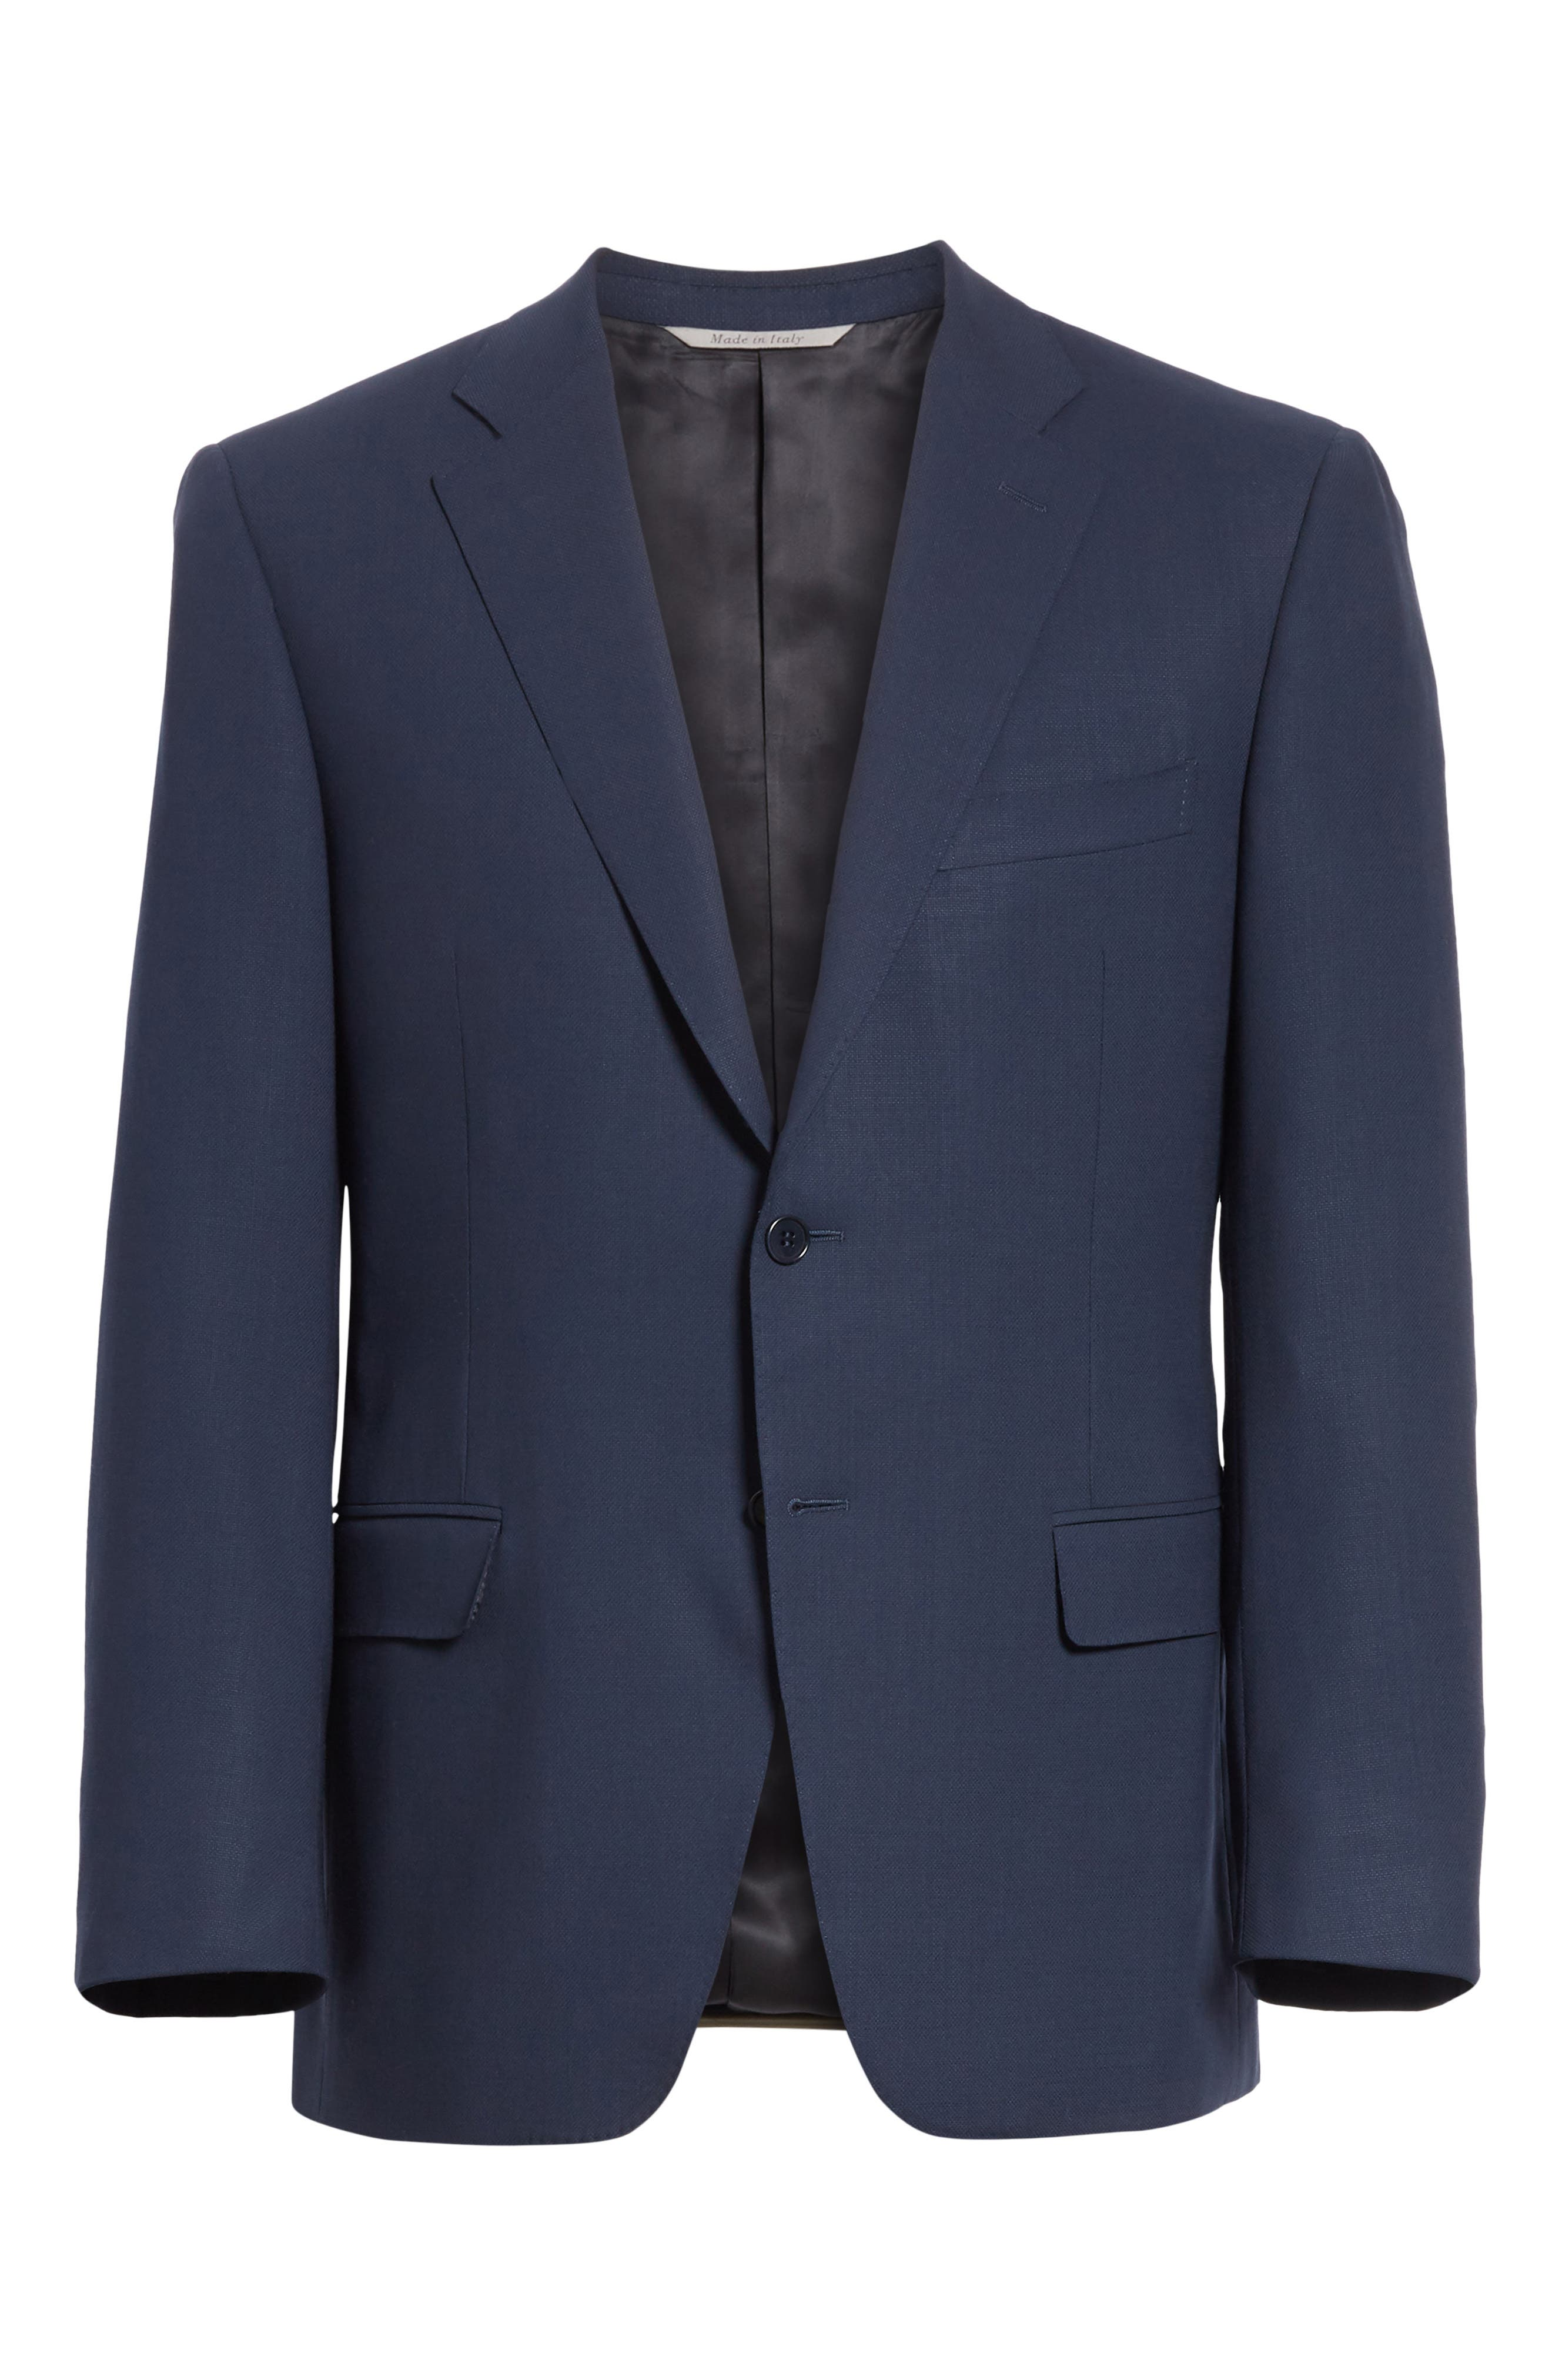 CANALI, Classic Fit Wool Blazer, Alternate thumbnail 5, color, NAVY